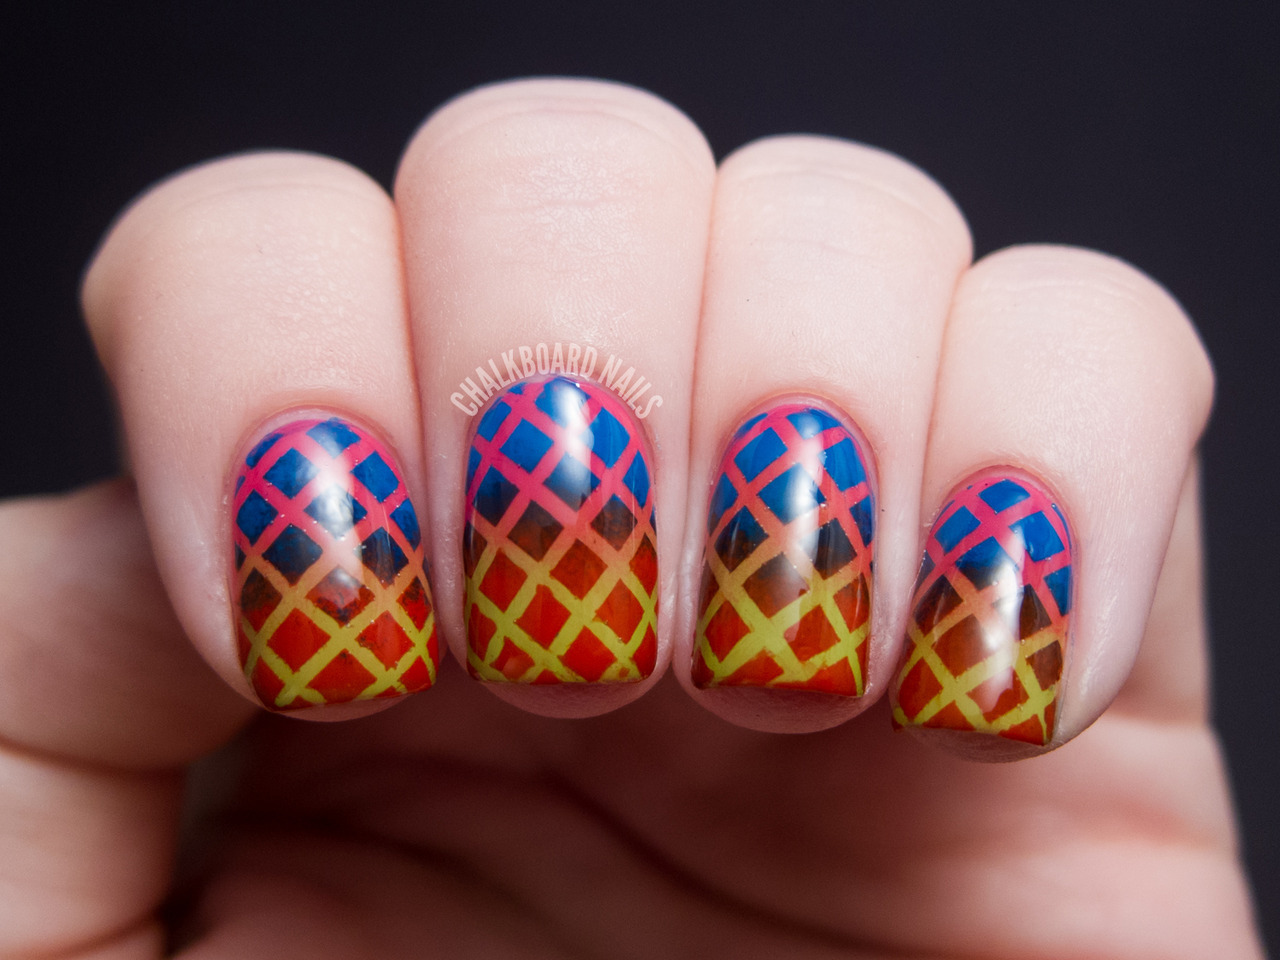 Double Gradient Mesh - China Glaze Cirque du Soleil Nail Art China Glaze Def DefyingChina Glaze Igniting LoveChina Glaze Escaping RealityChina Glaze Hanging In the Balance